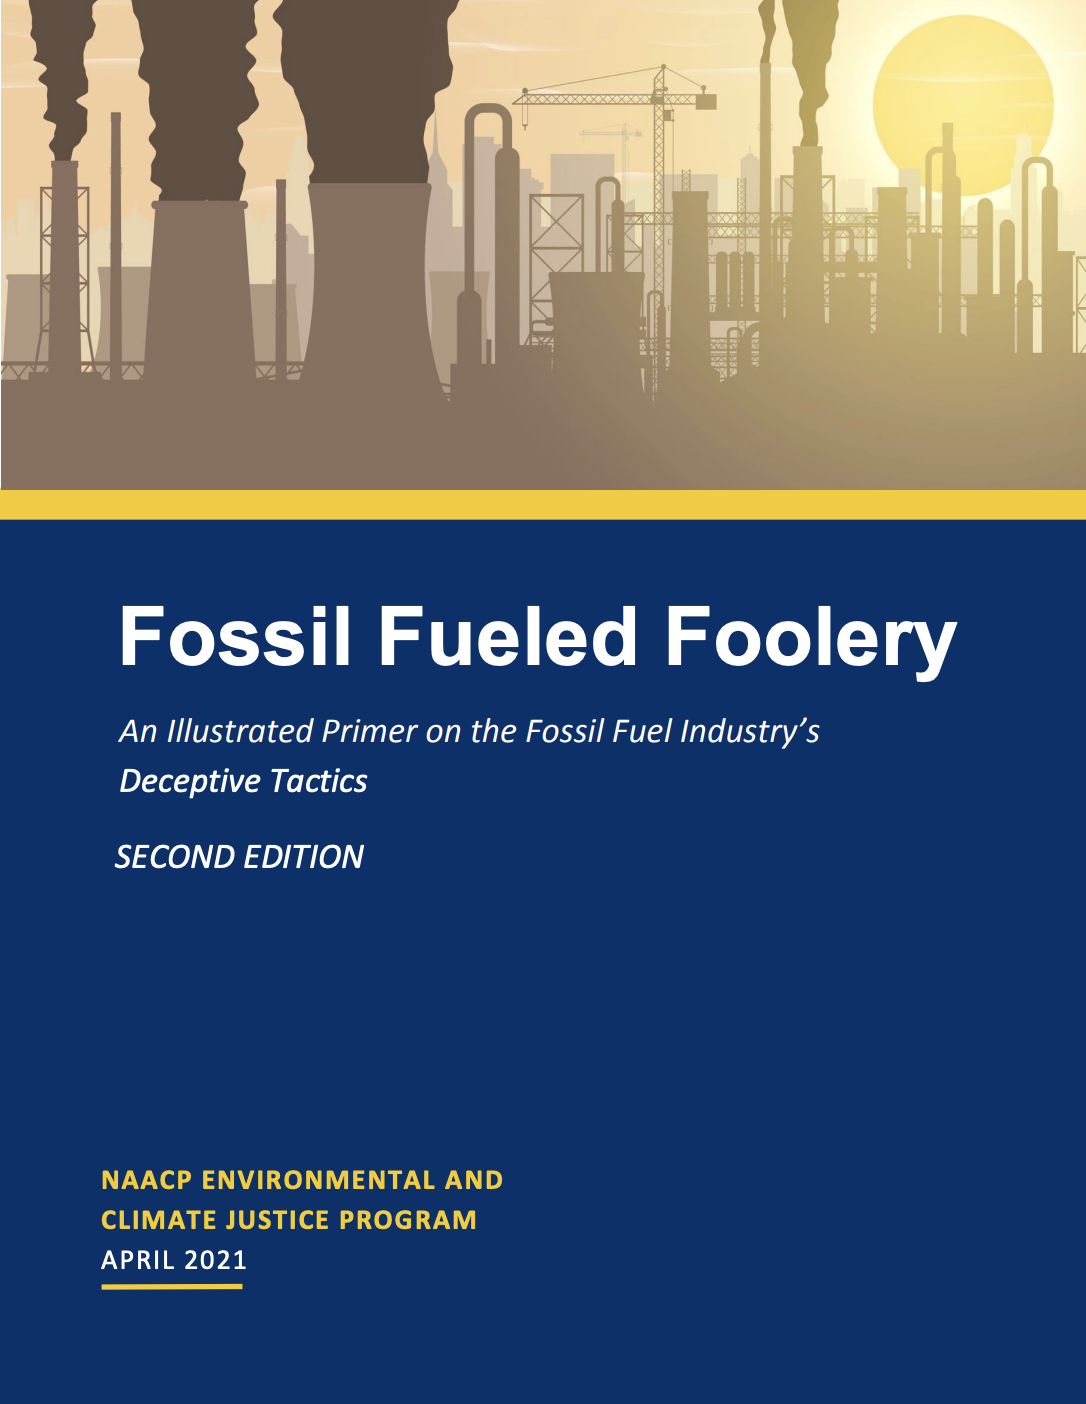 Read - Fossil Fueled Foolery NAACP